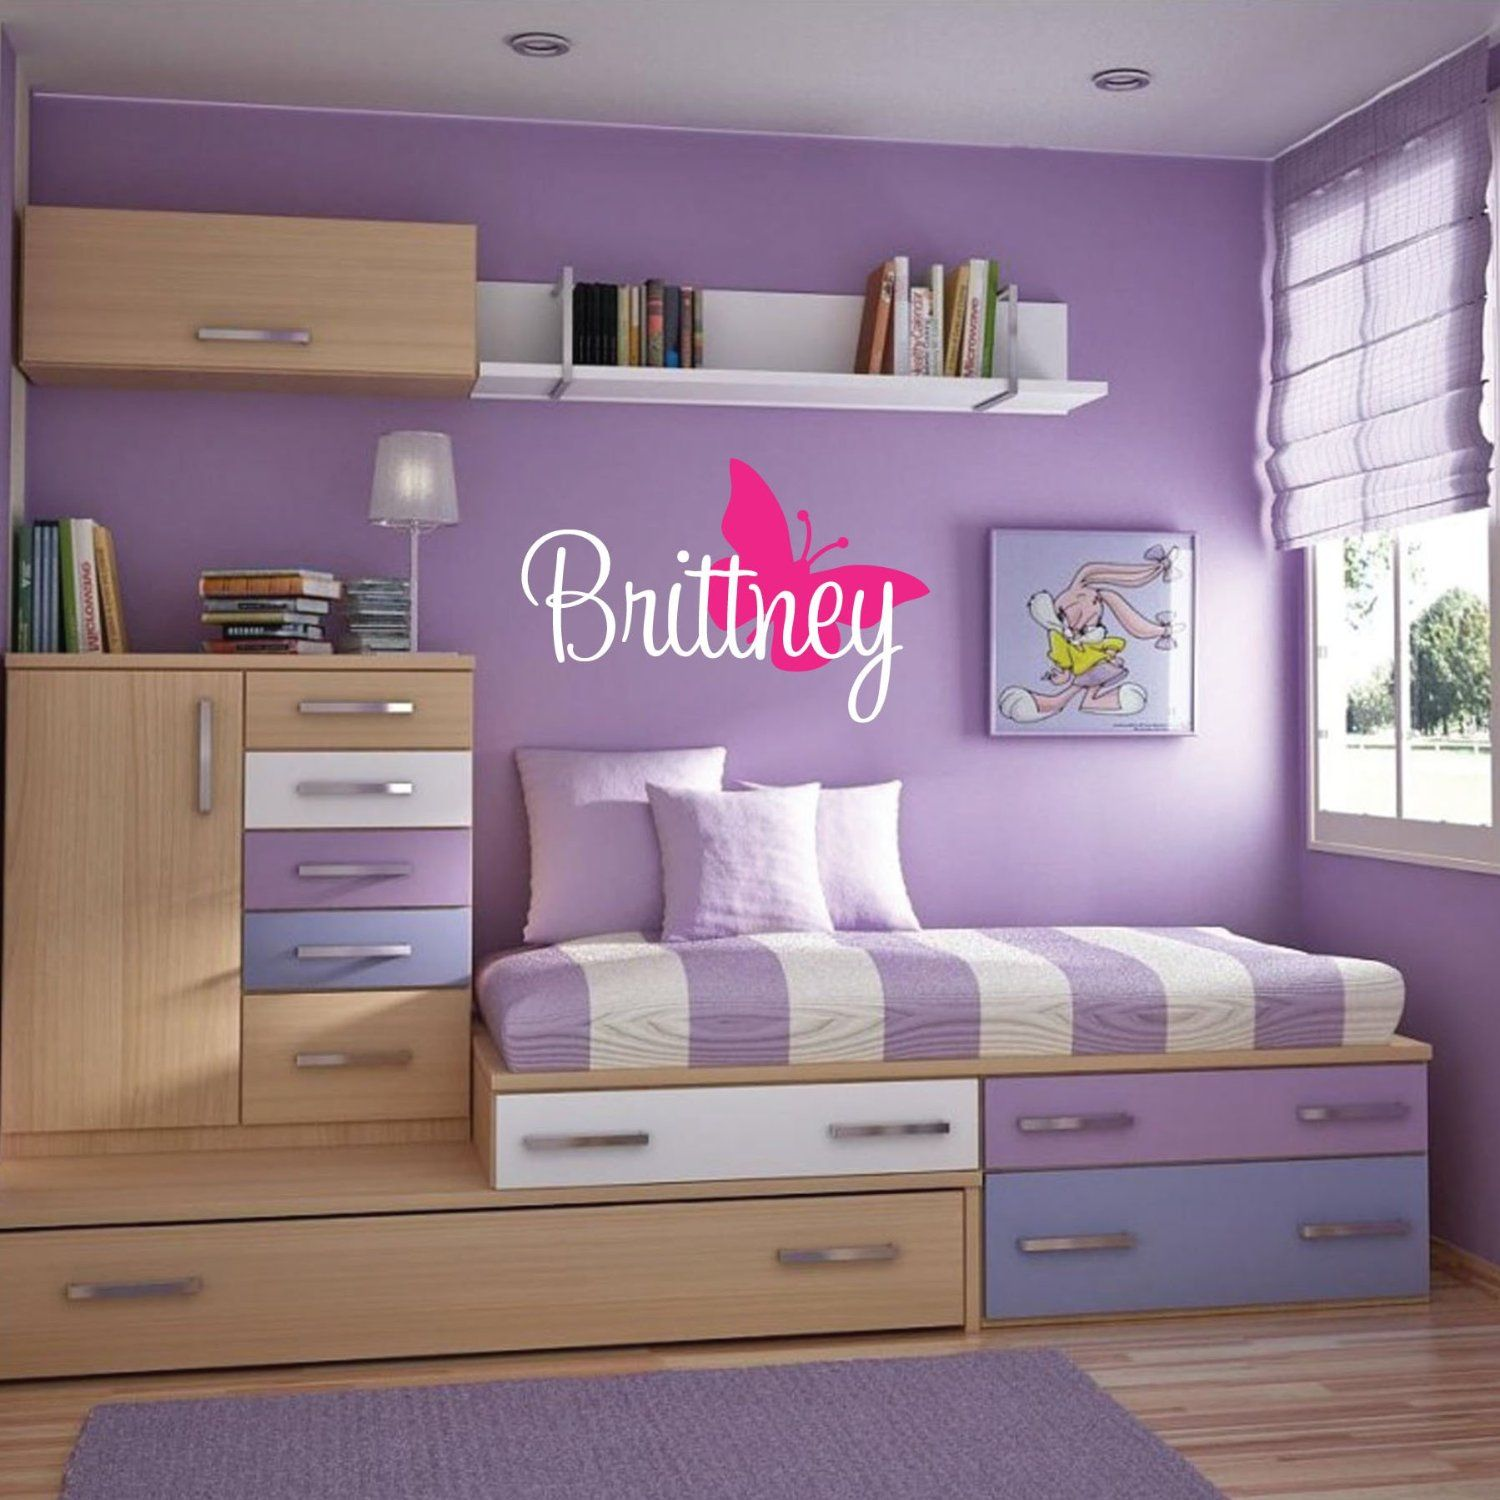 Girls Bedroom Ideas For Every Child: Brilliant Children's Room Idea But With Boy Colors!